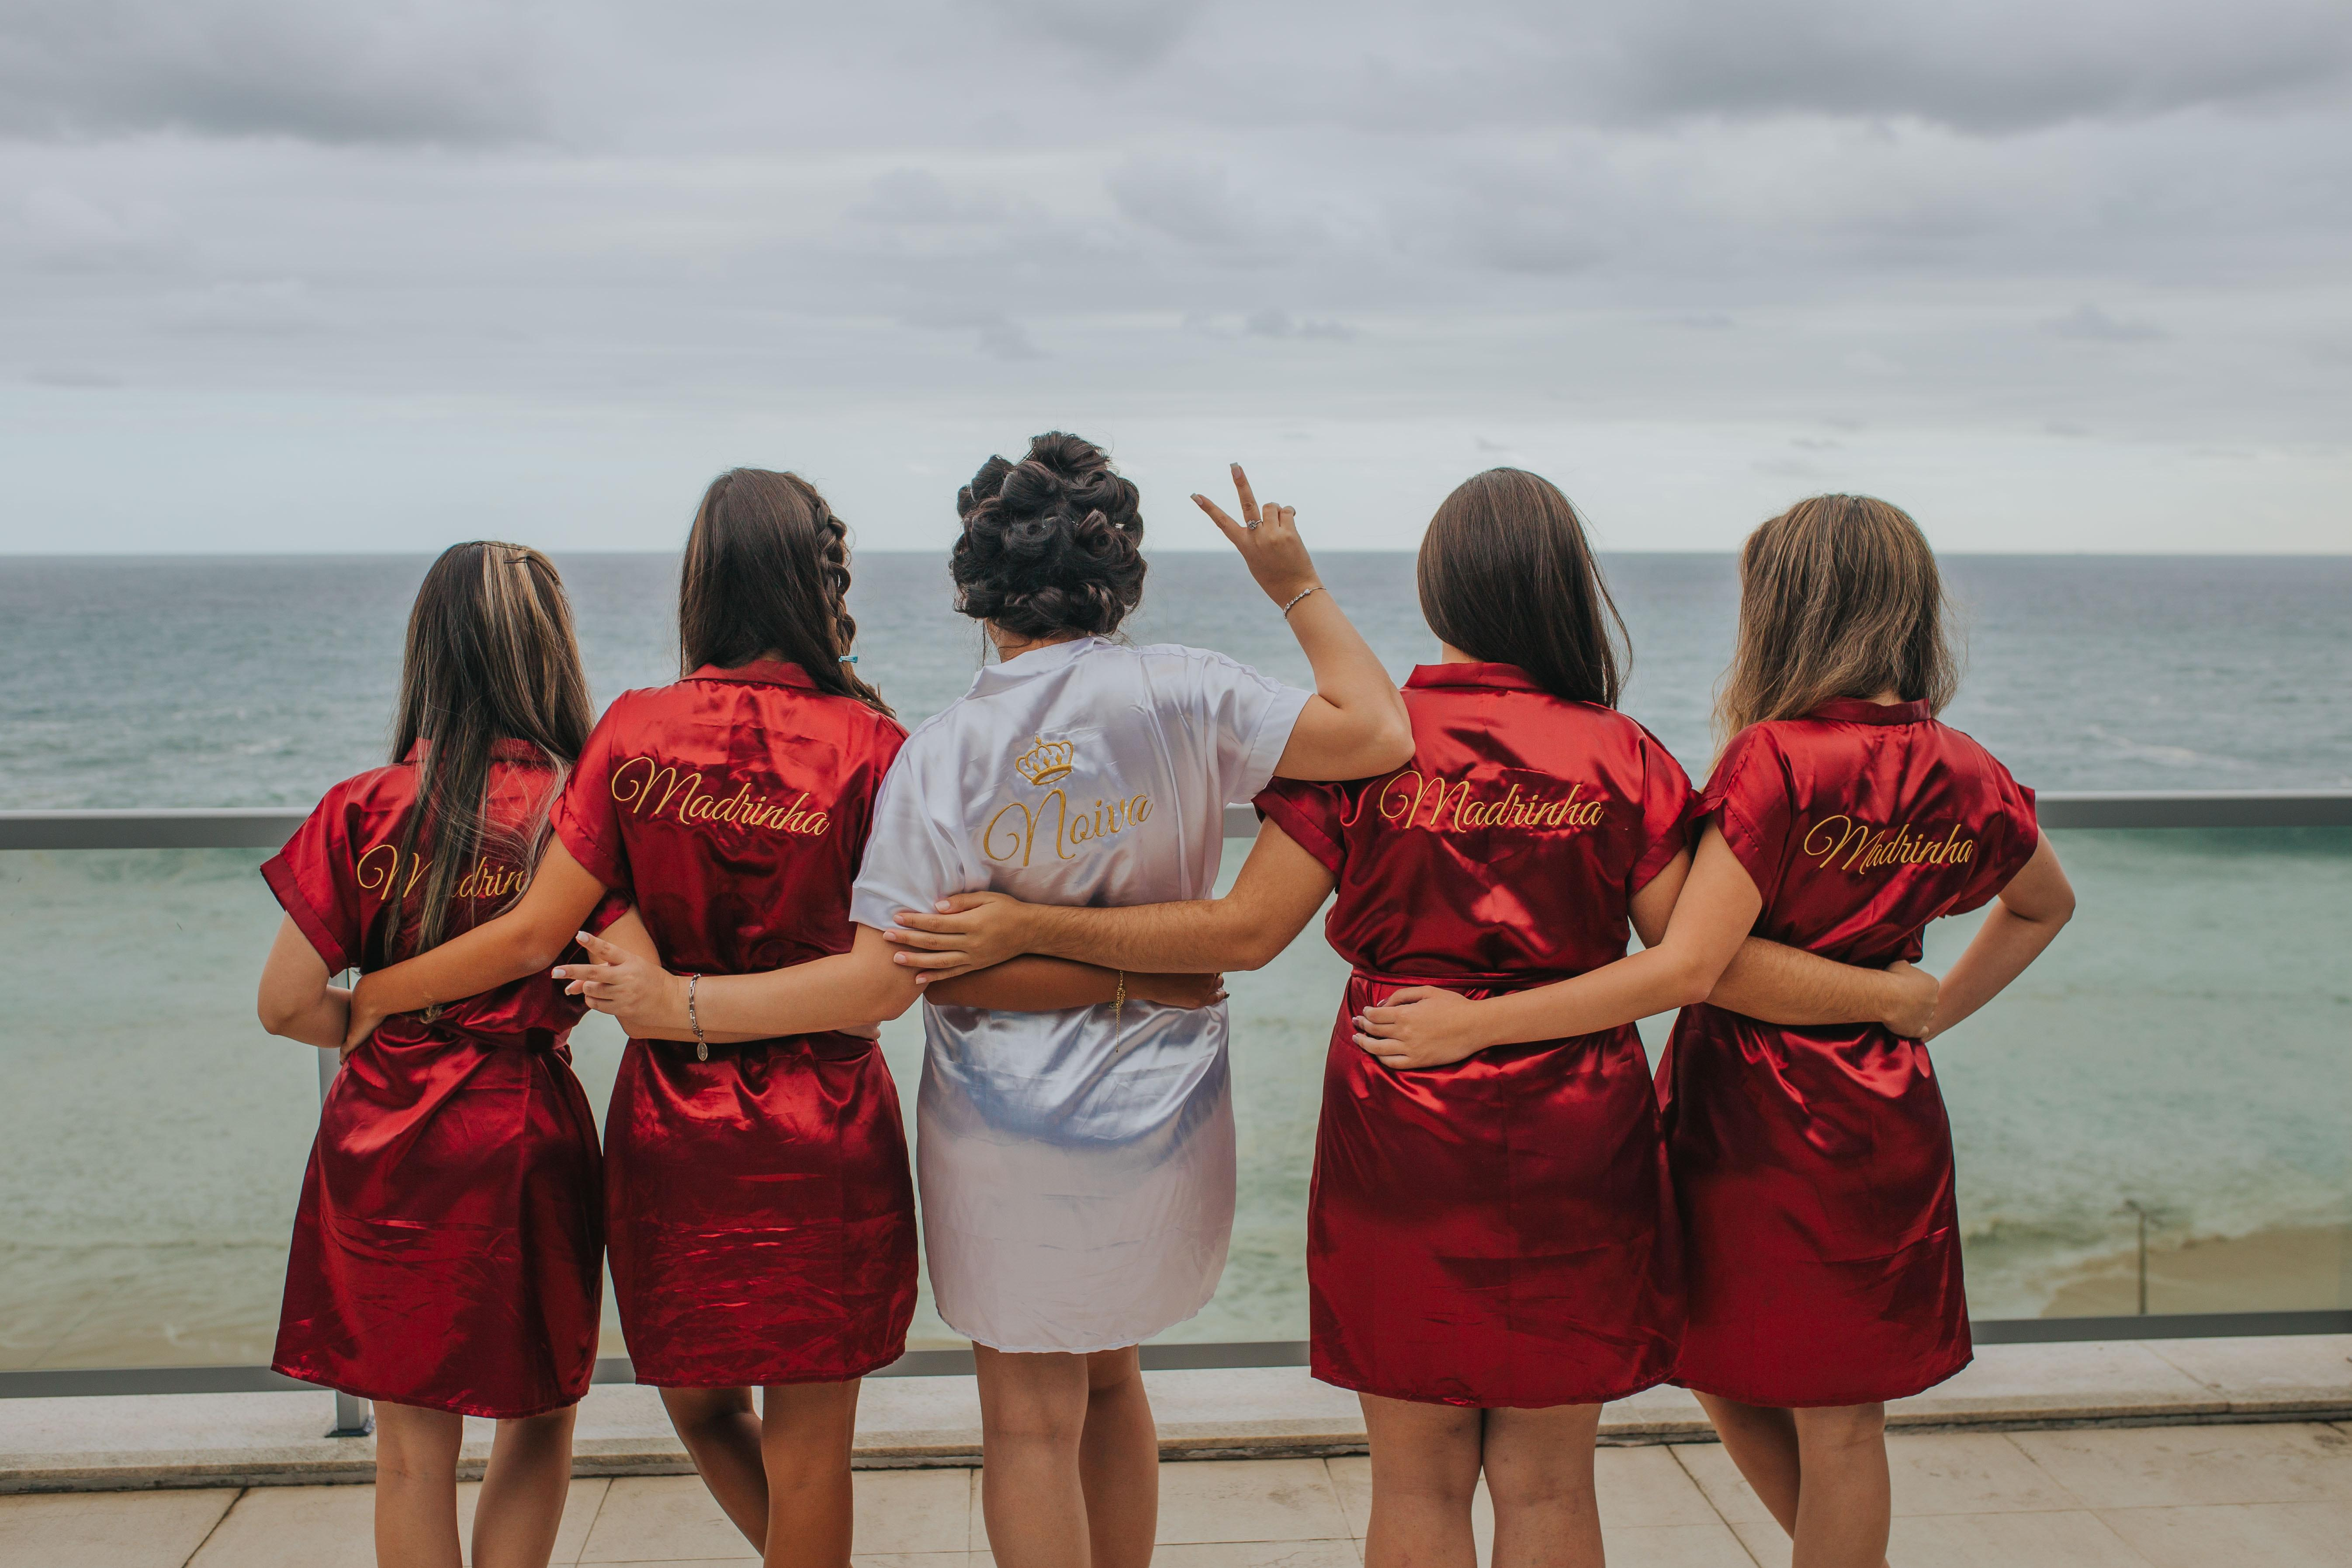 Bachelor-ette or Jack & Jill Party Cruises: Best Bride Tribe Floating Party